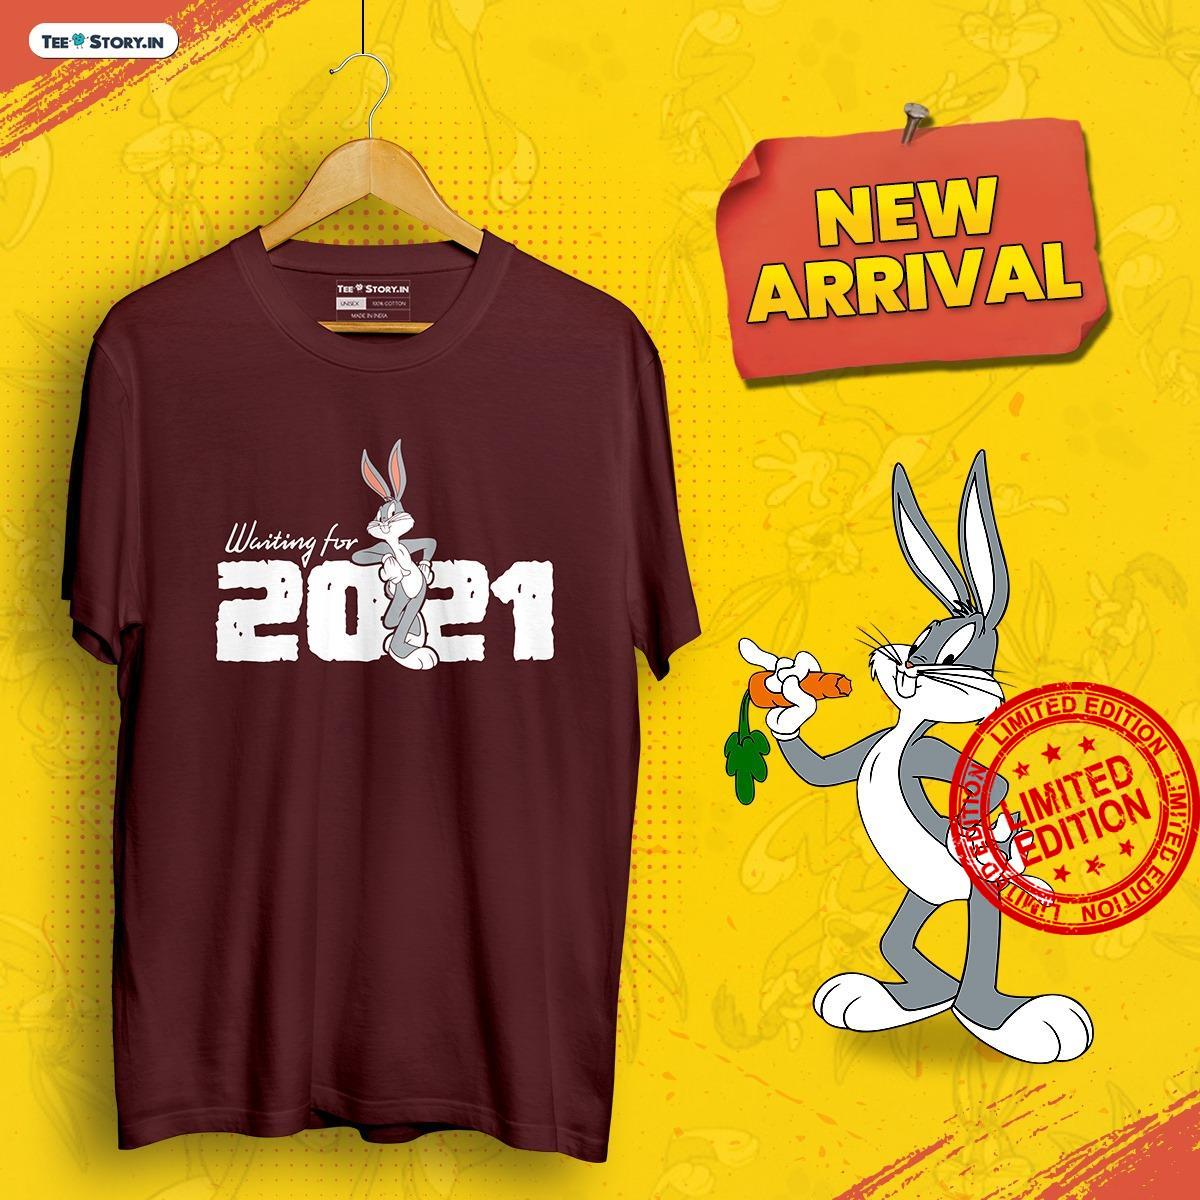 Waiting For 2021 Shirt